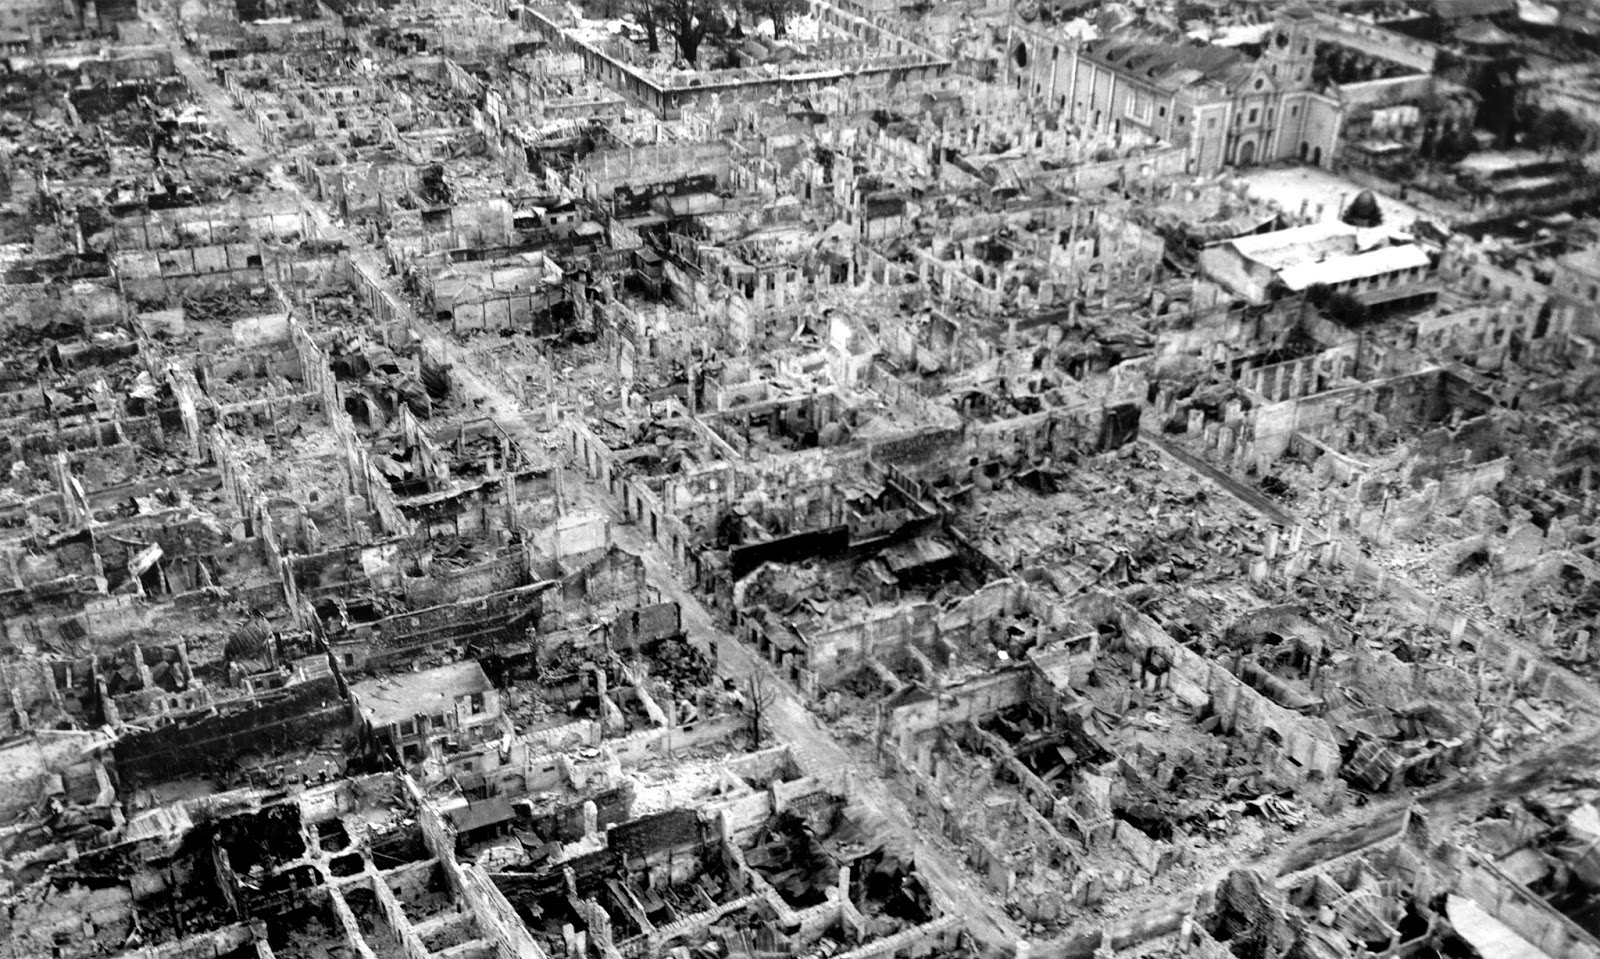 File:Manila Walled City Destruction May 1945.jpg